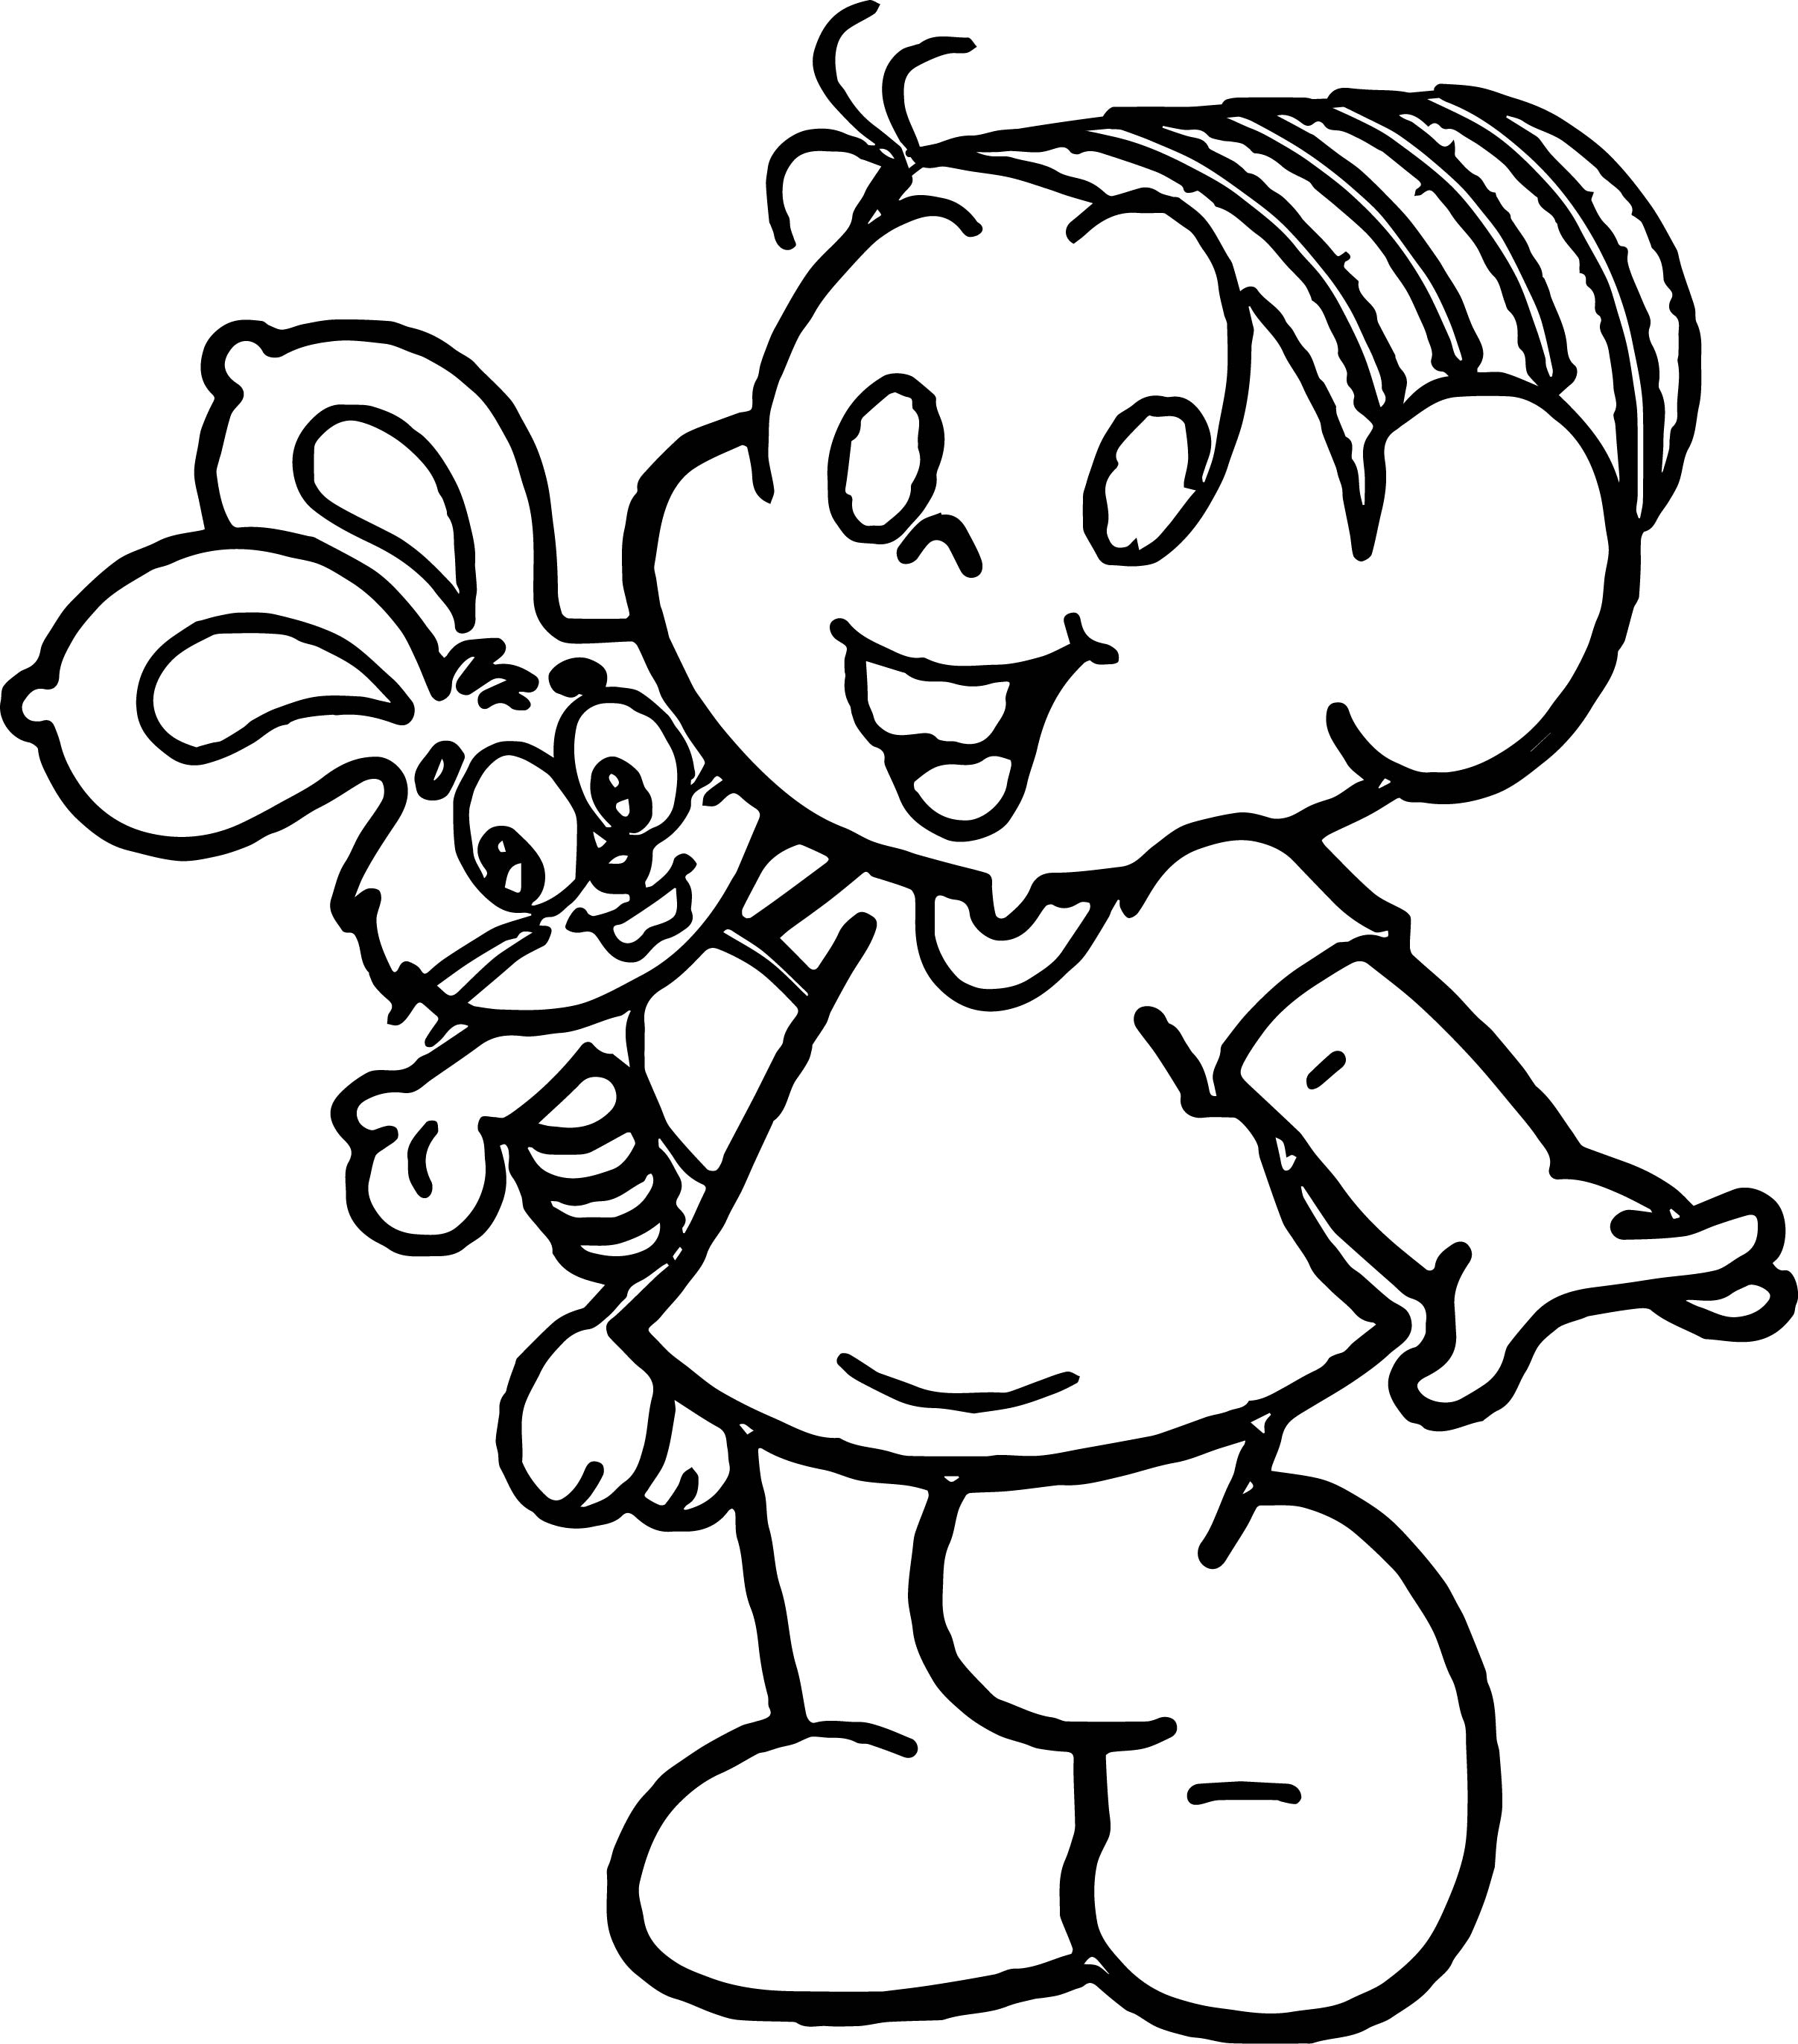 turma da monica and toy bunny happy times coloring page